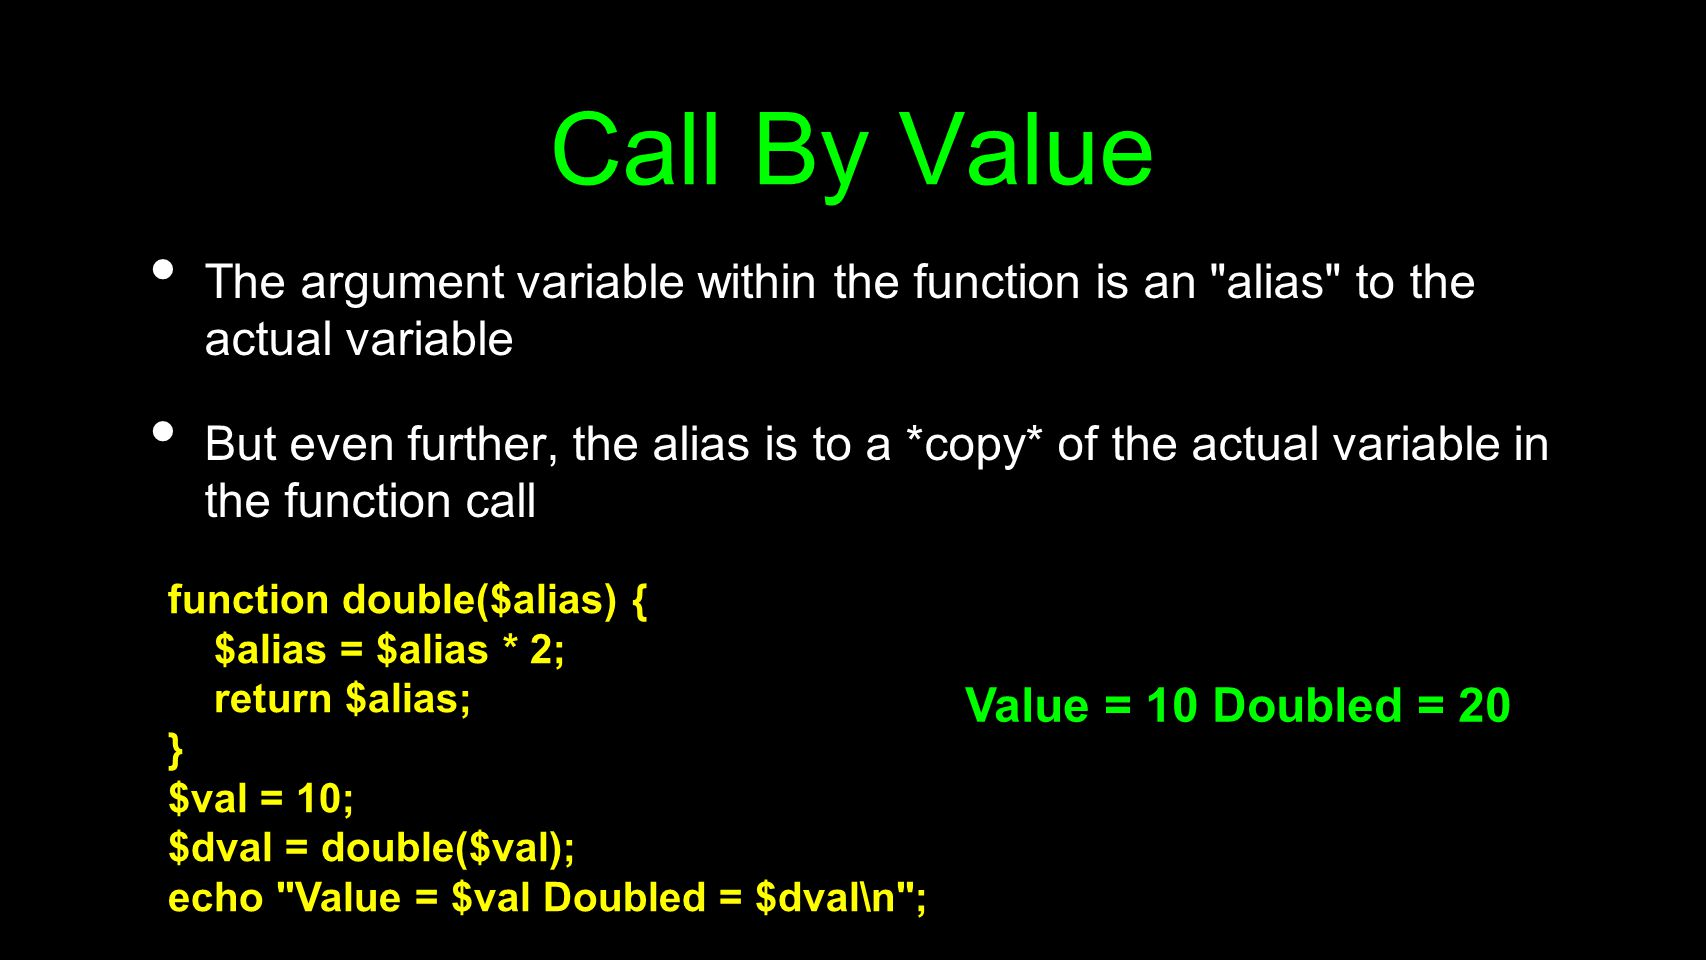 Call By Value The argument variable within the function is an alias to the actual variable.